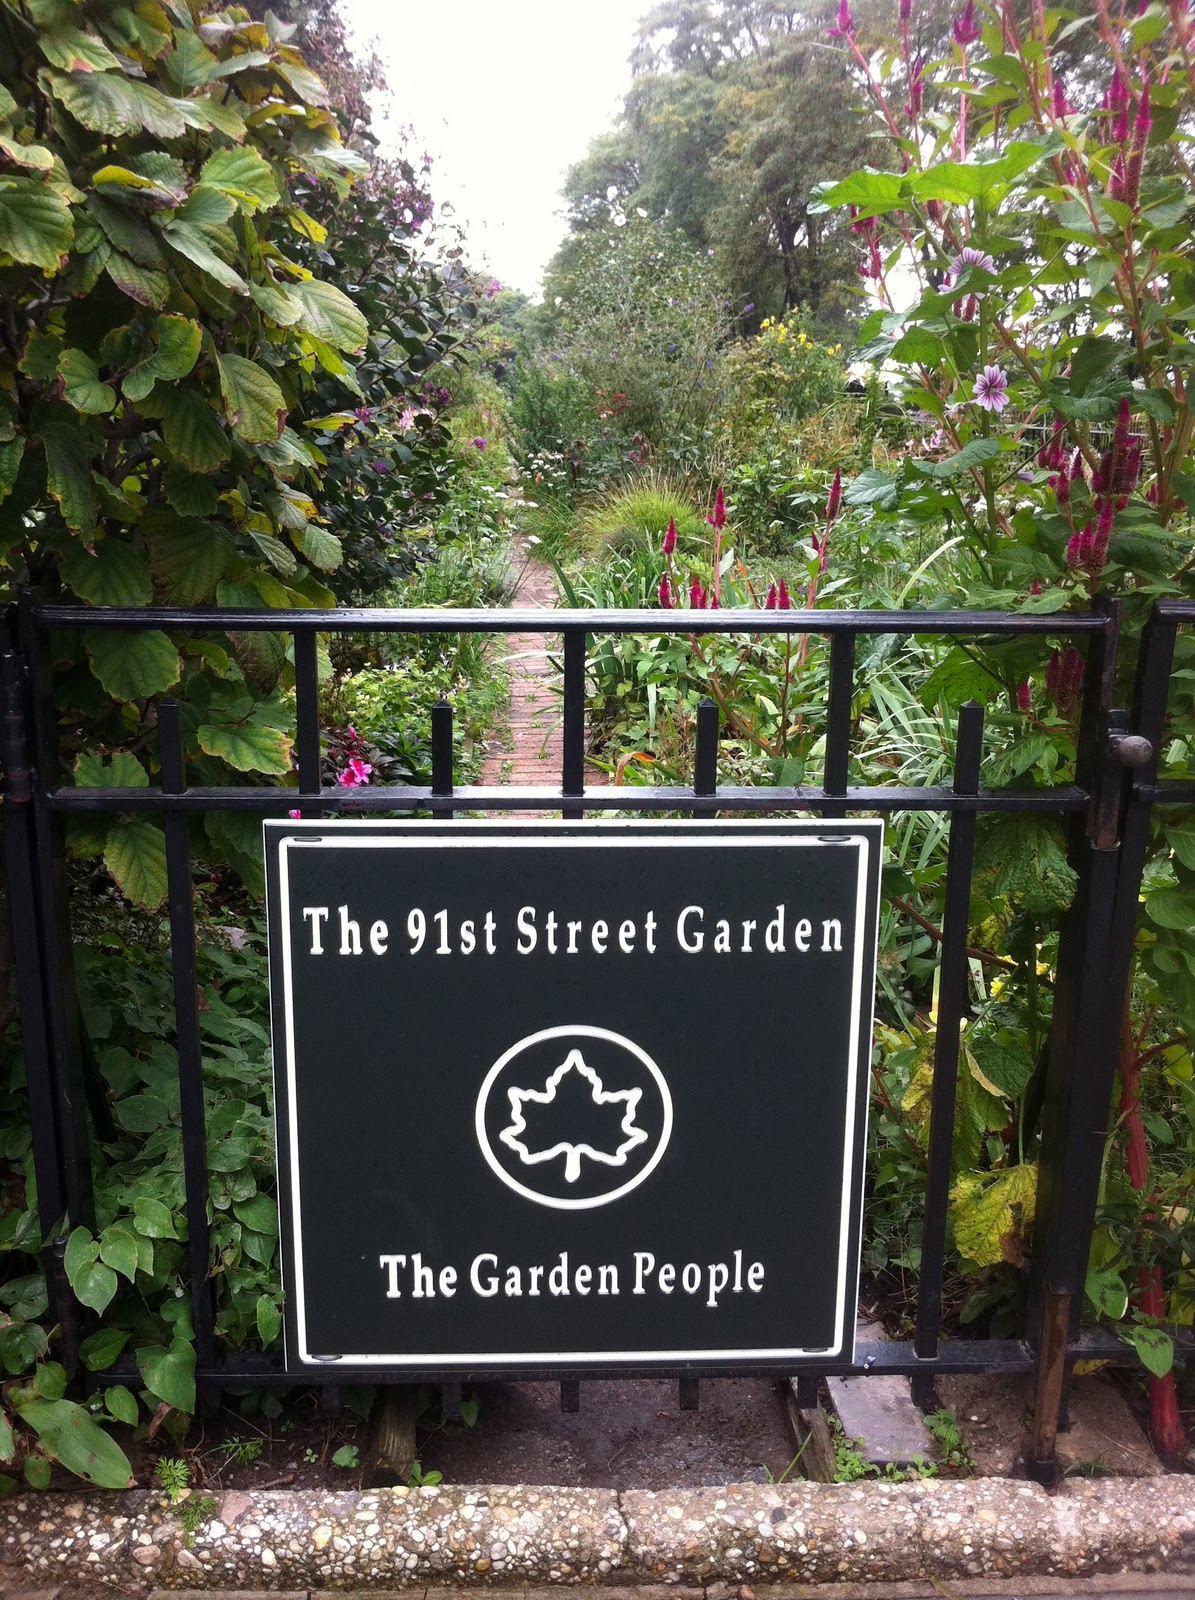 The 91st Street Garden Is A Beautiful Garden In Riverside Park (mentioned  In The Movie Youu0027ve Got Mail). Itu0027s The Perfect Example Of Organized Chaos.